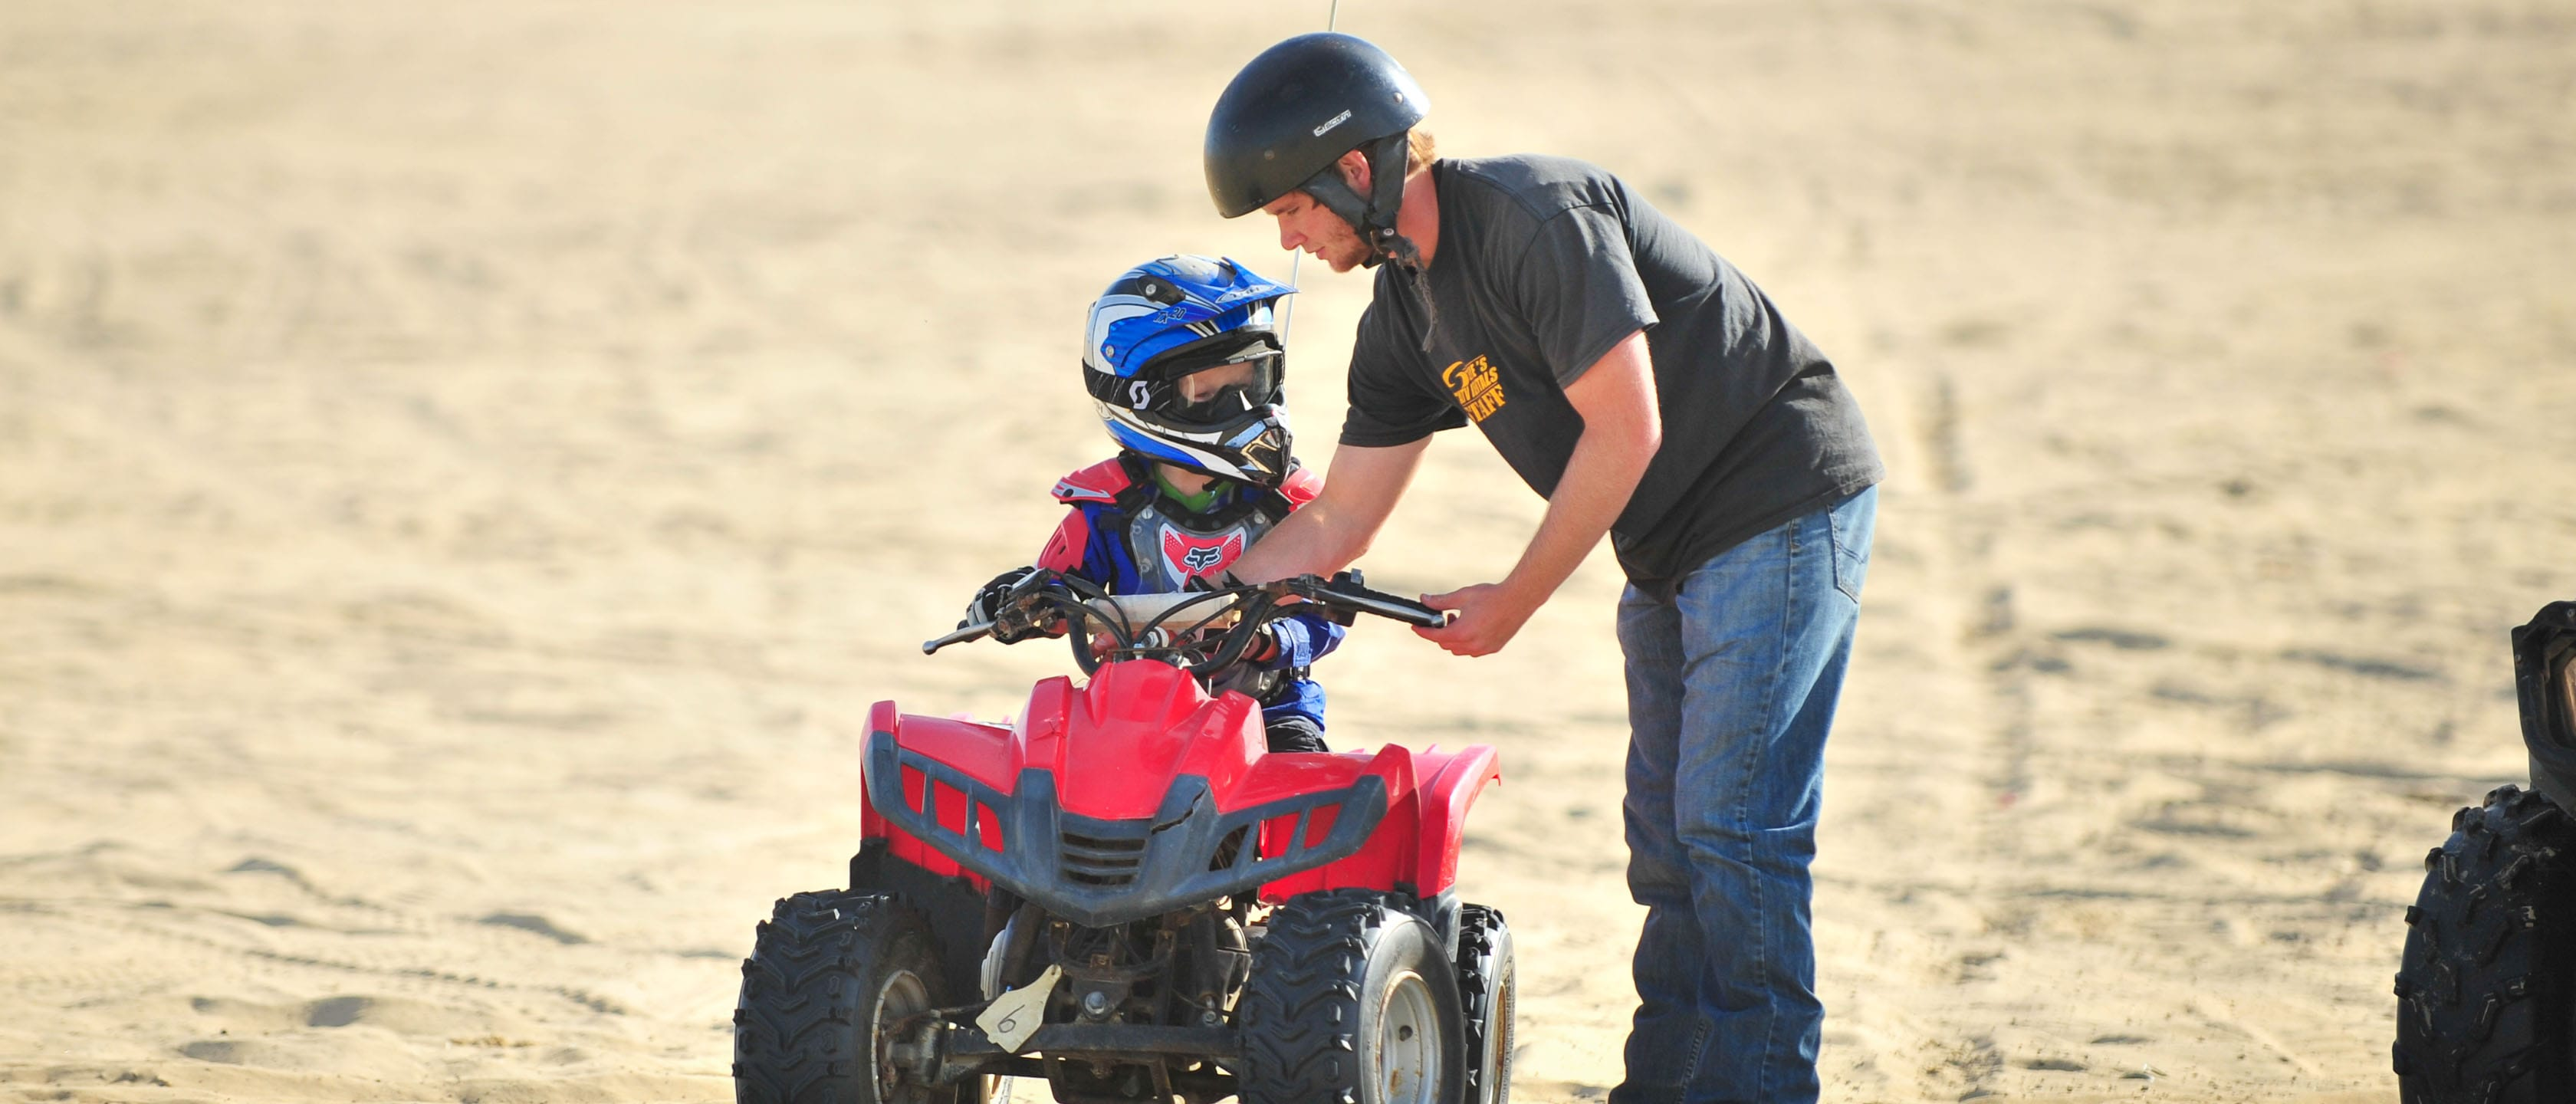 Adult teaching a child how to ride an ATV